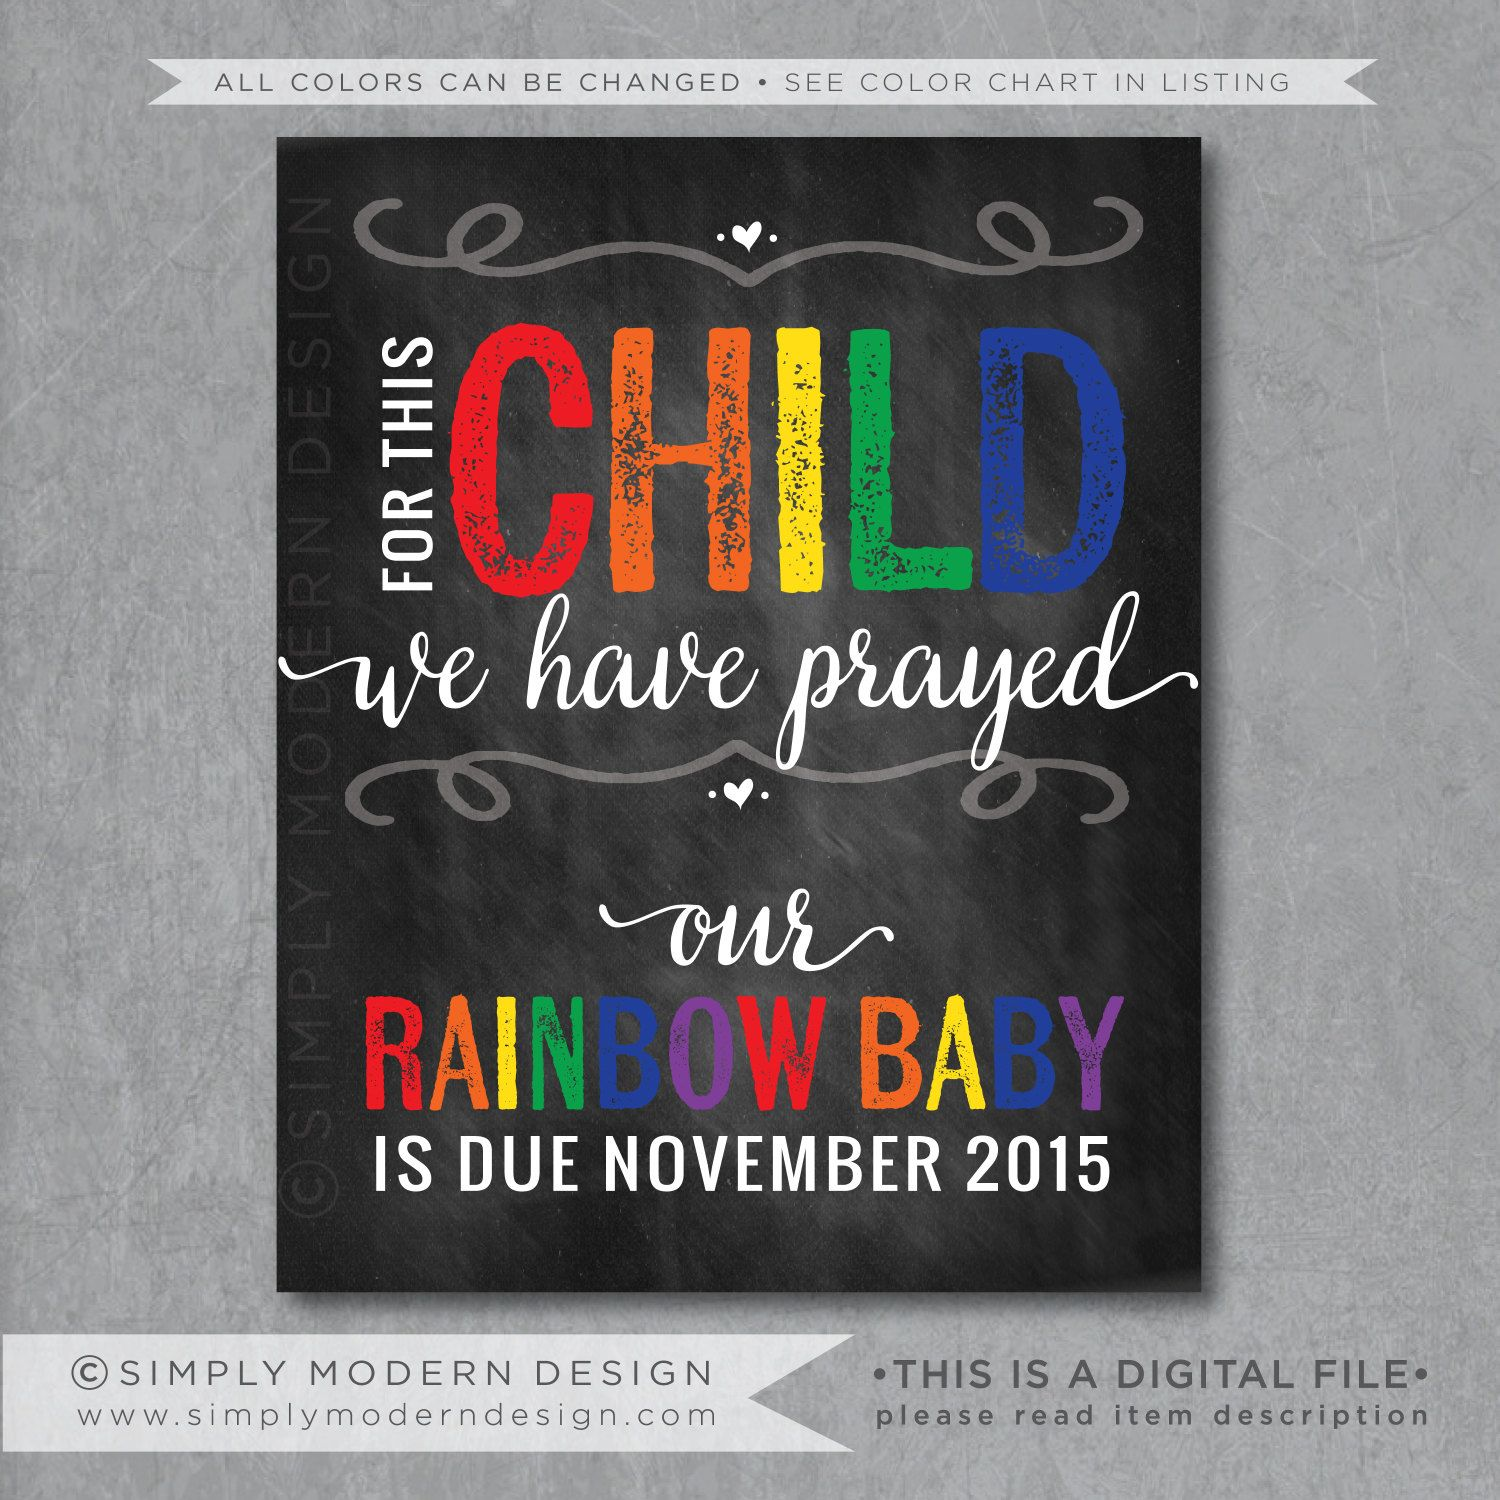 rainbow baby pregnancy announcement for this child we have prayed